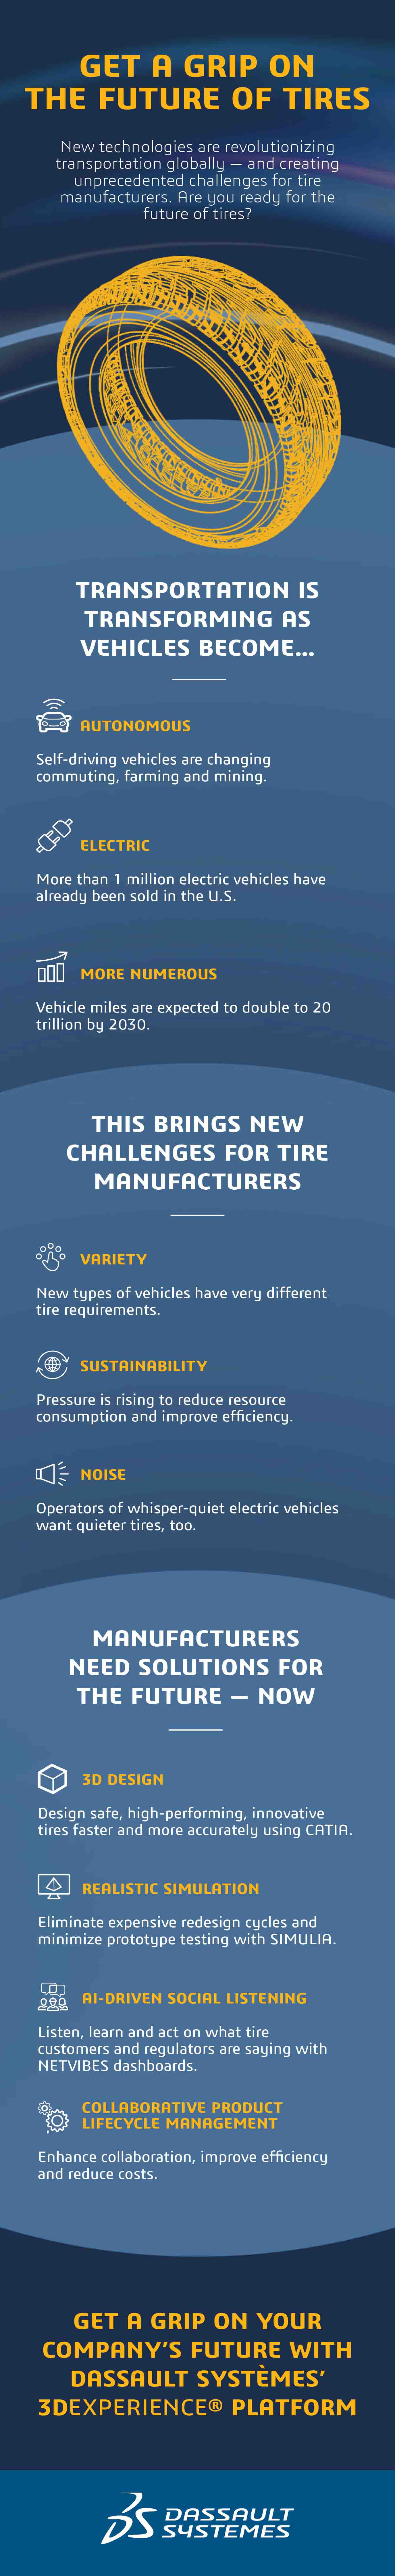 Get a Grip on the Future of Tire Manufacturing Infographic Mobile > Story > Dassault Systèmes®